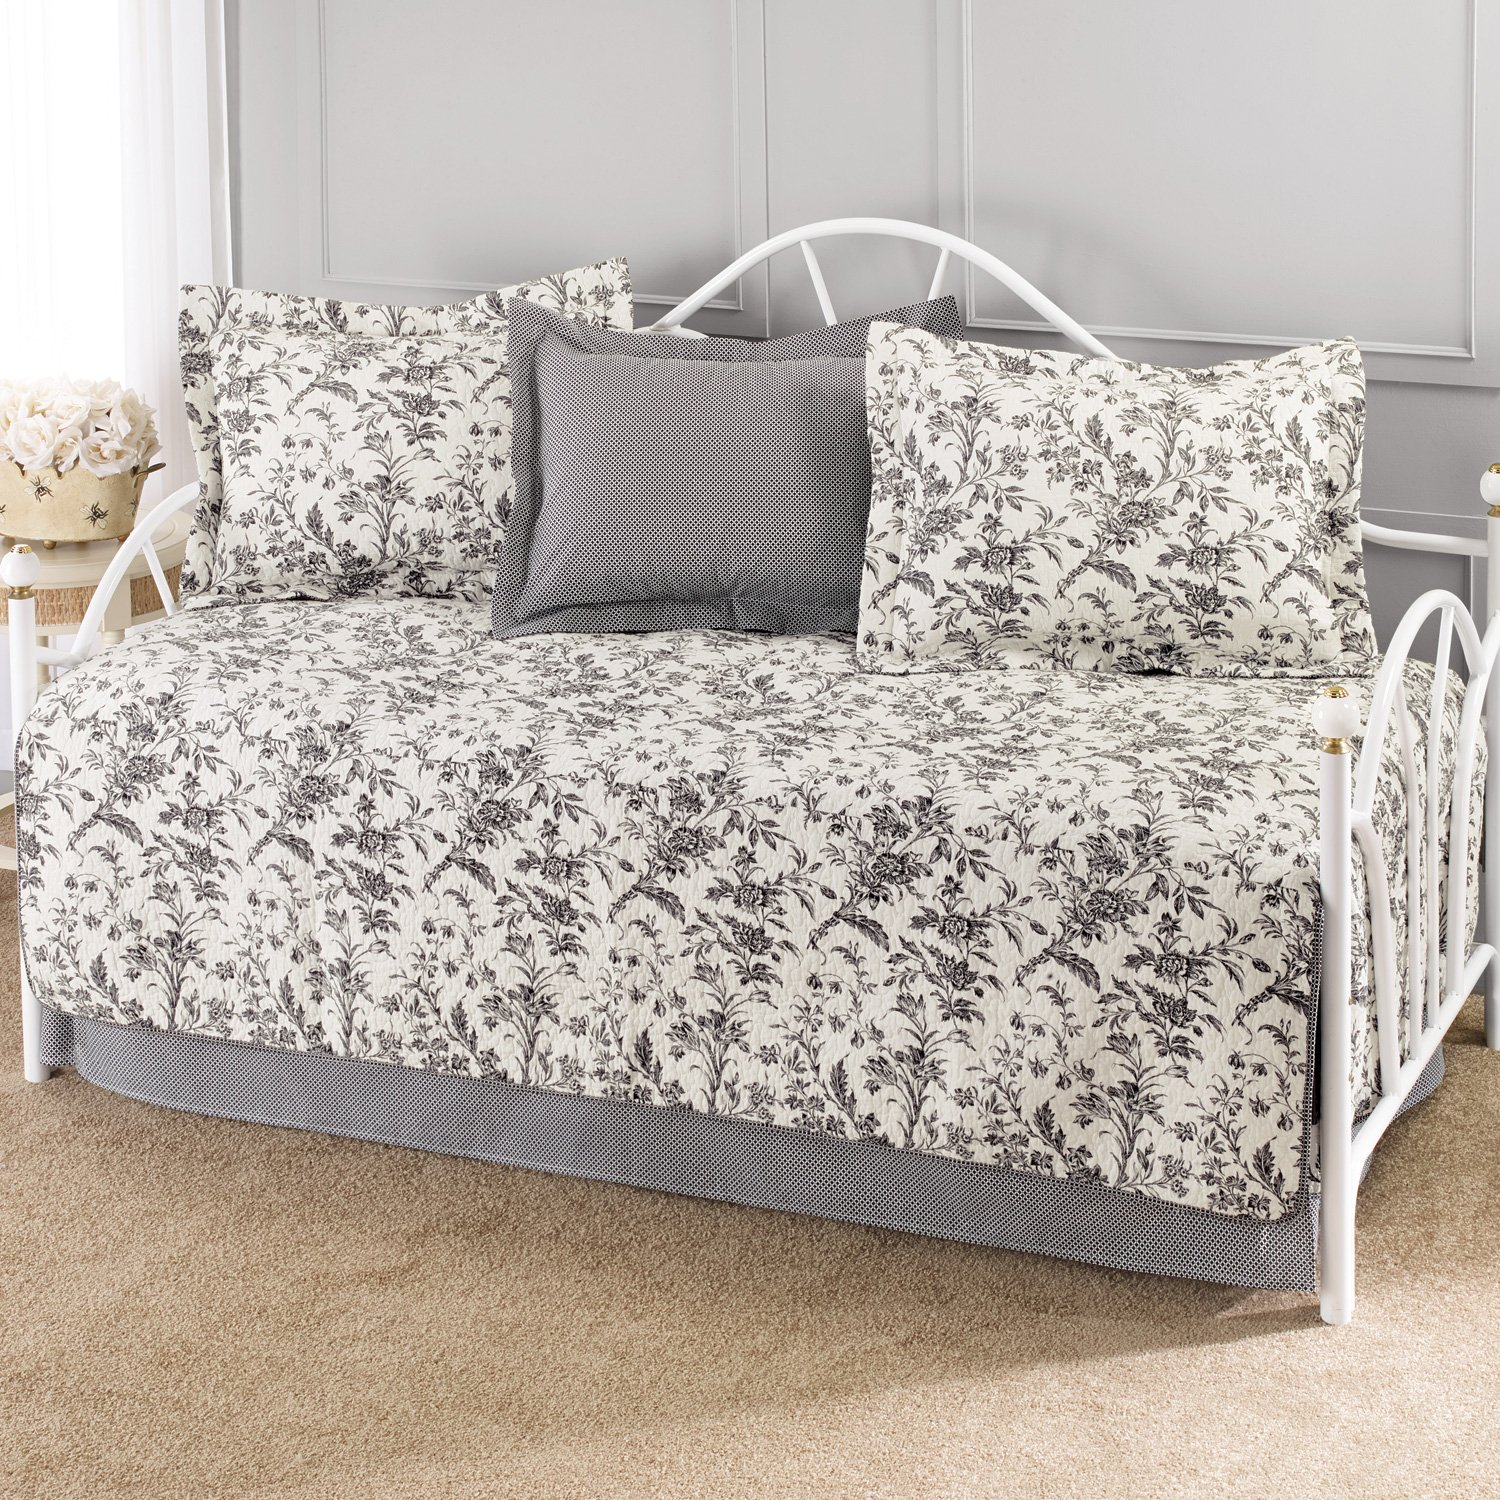 Amazon.com: Laura Ashley Amberley 5-Piece Cotton Daybed/Quilt Set Twin:  Home & Kitchen - Amazon.com: Laura Ashley Amberley 5-Piece Cotton Daybed/Quilt Set